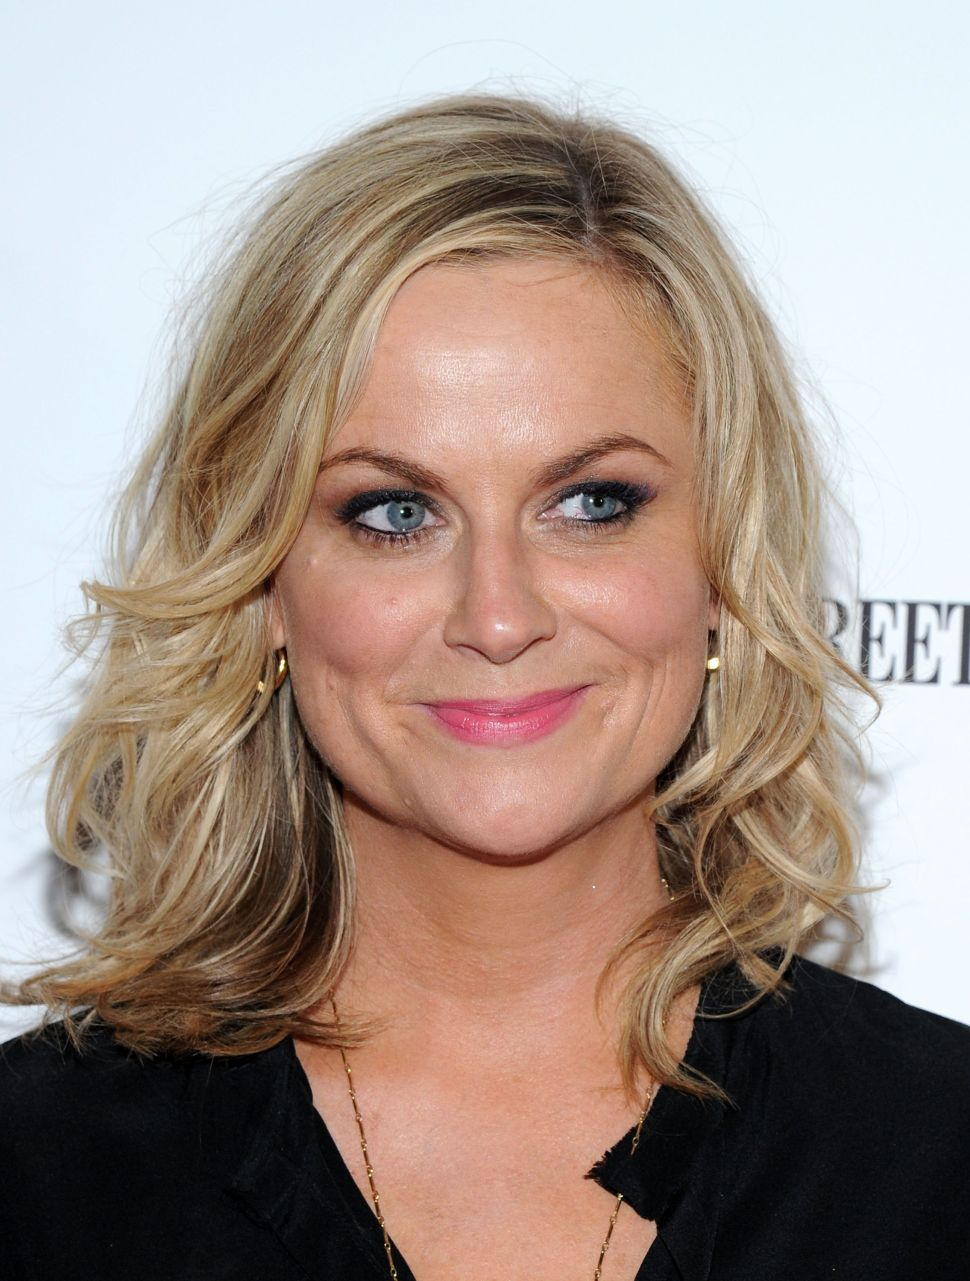 Amy Poehler's Film Fest at the McKittrick Hotel Sells Out in a Day